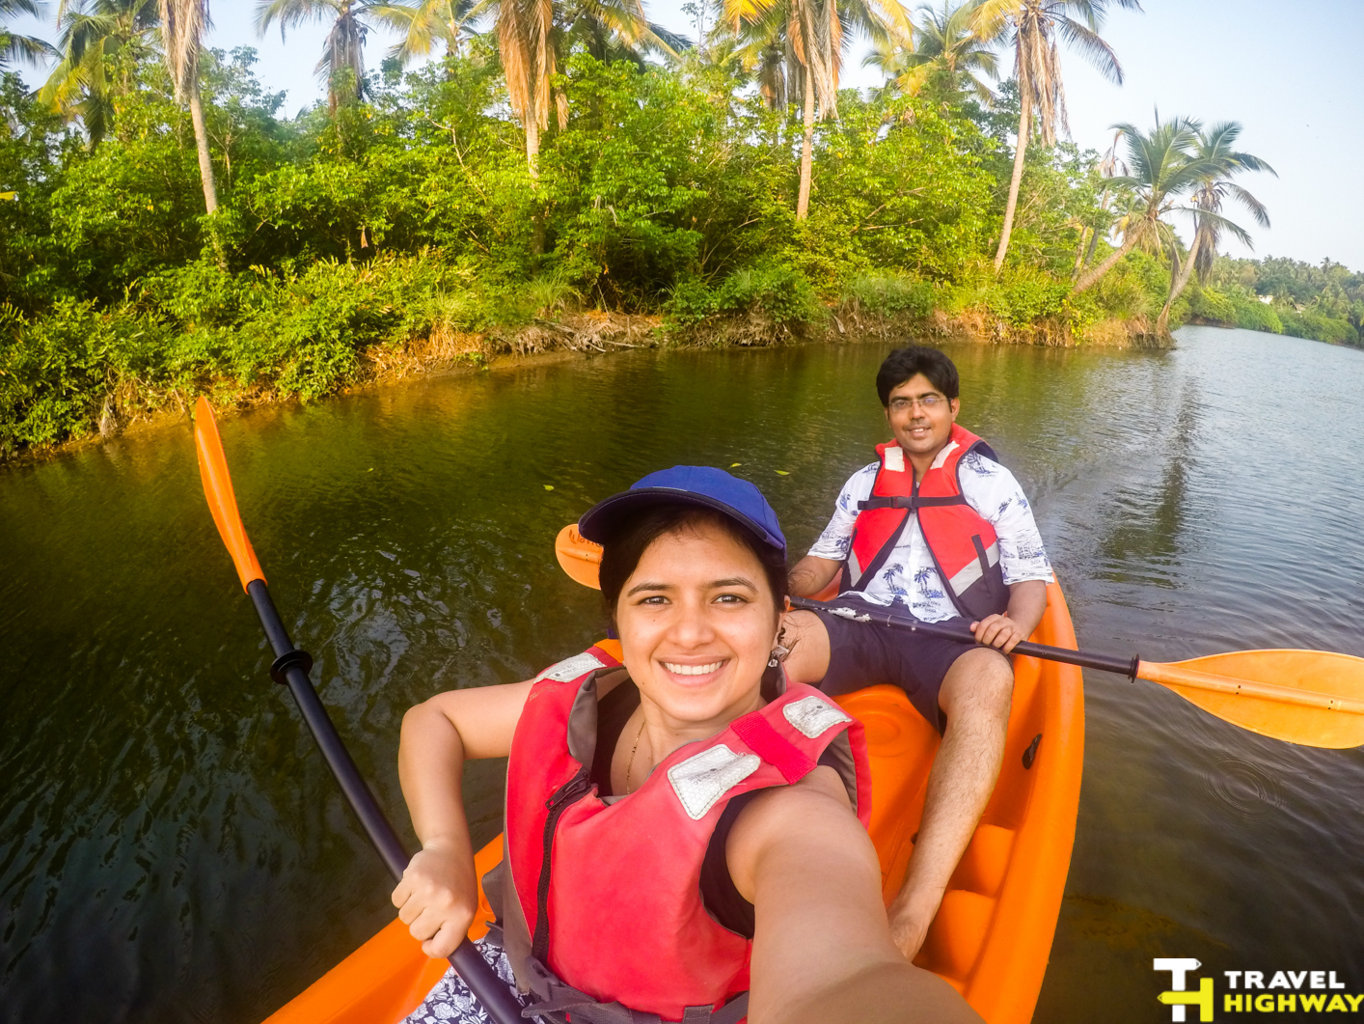 Kayaking in the Kappil River at Vivanta by Taj Bekal